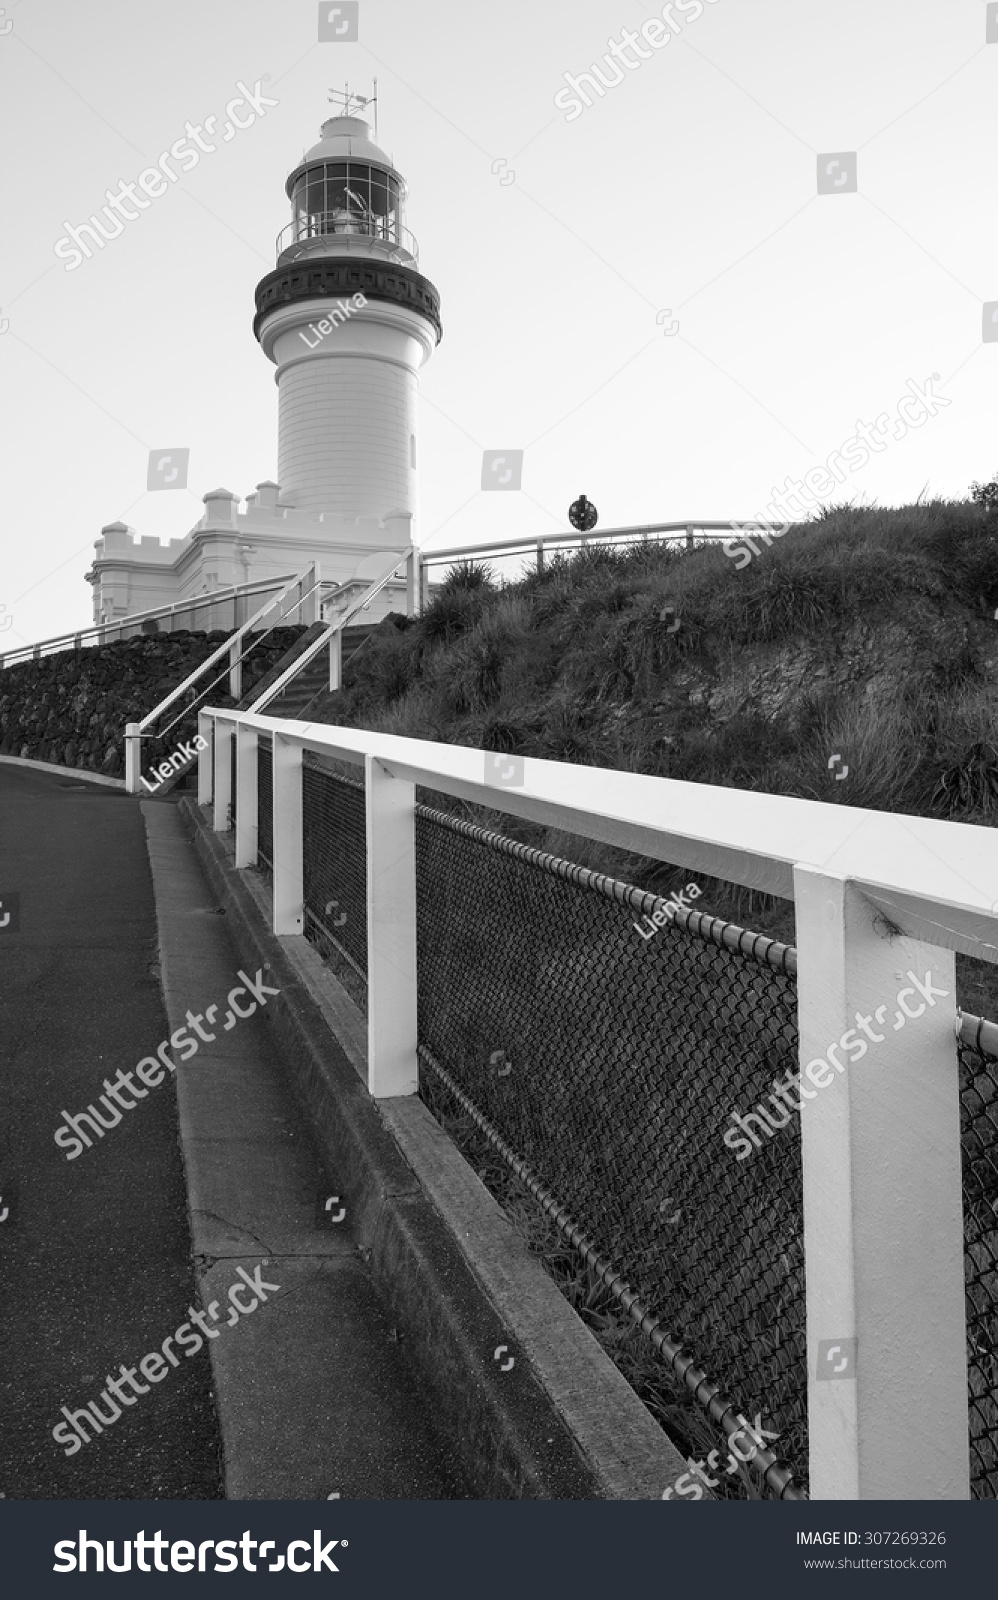 Black and white photo of the iconic cape byron lighthouse on top of a hill